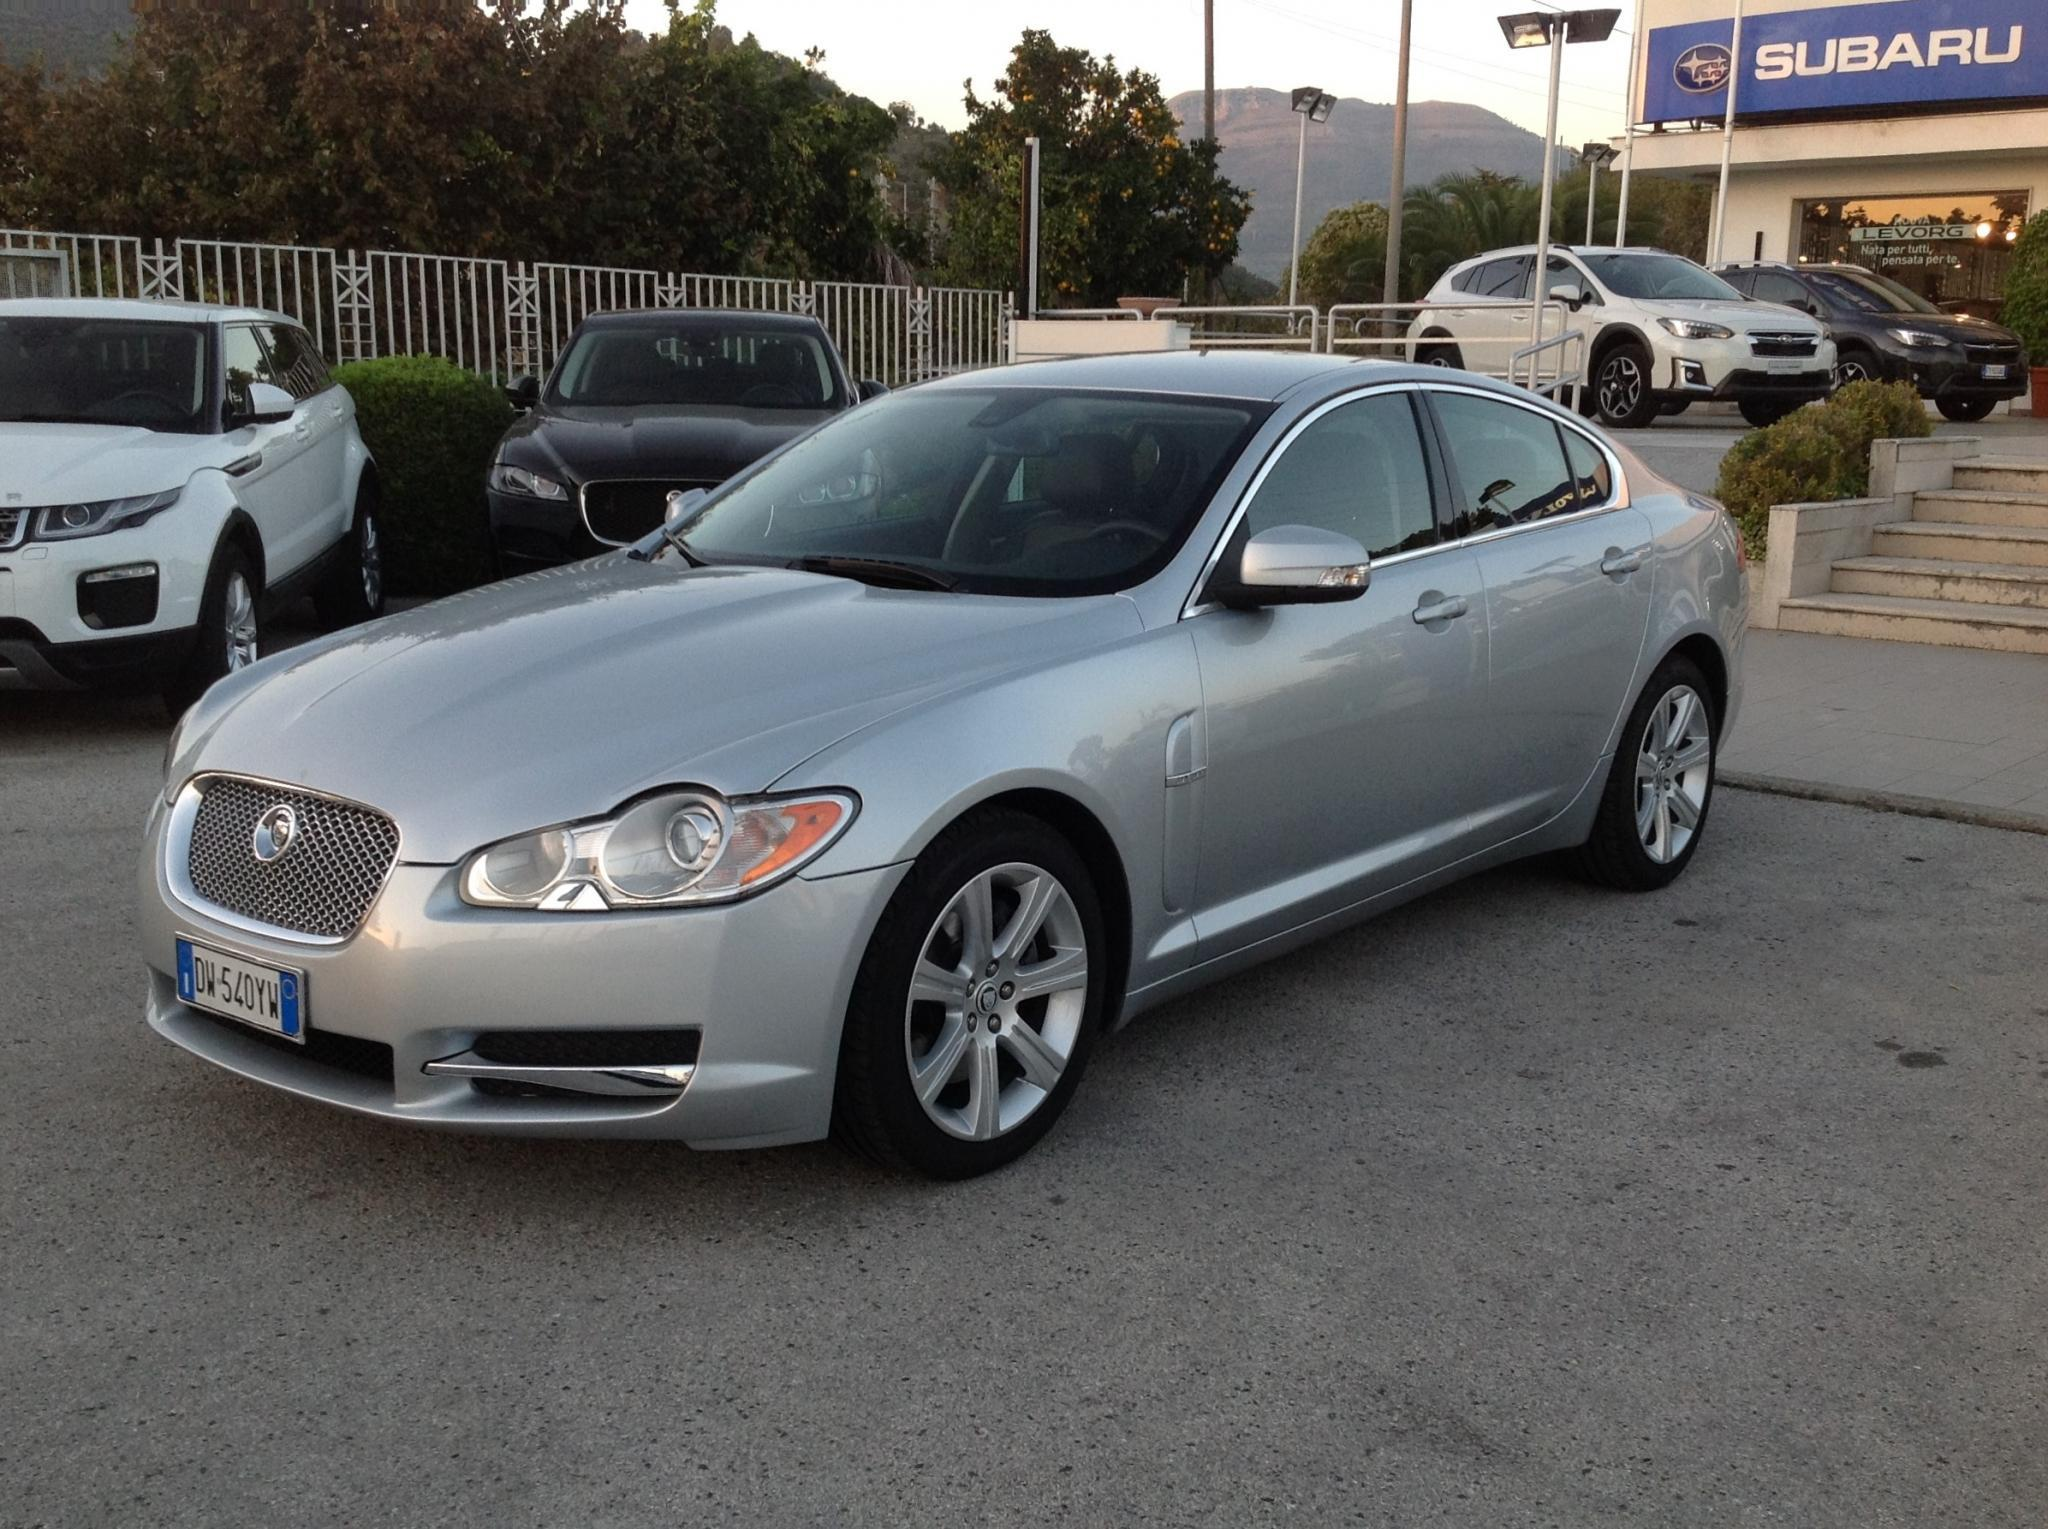 Jaguar XF 2.7D V6 Luxury